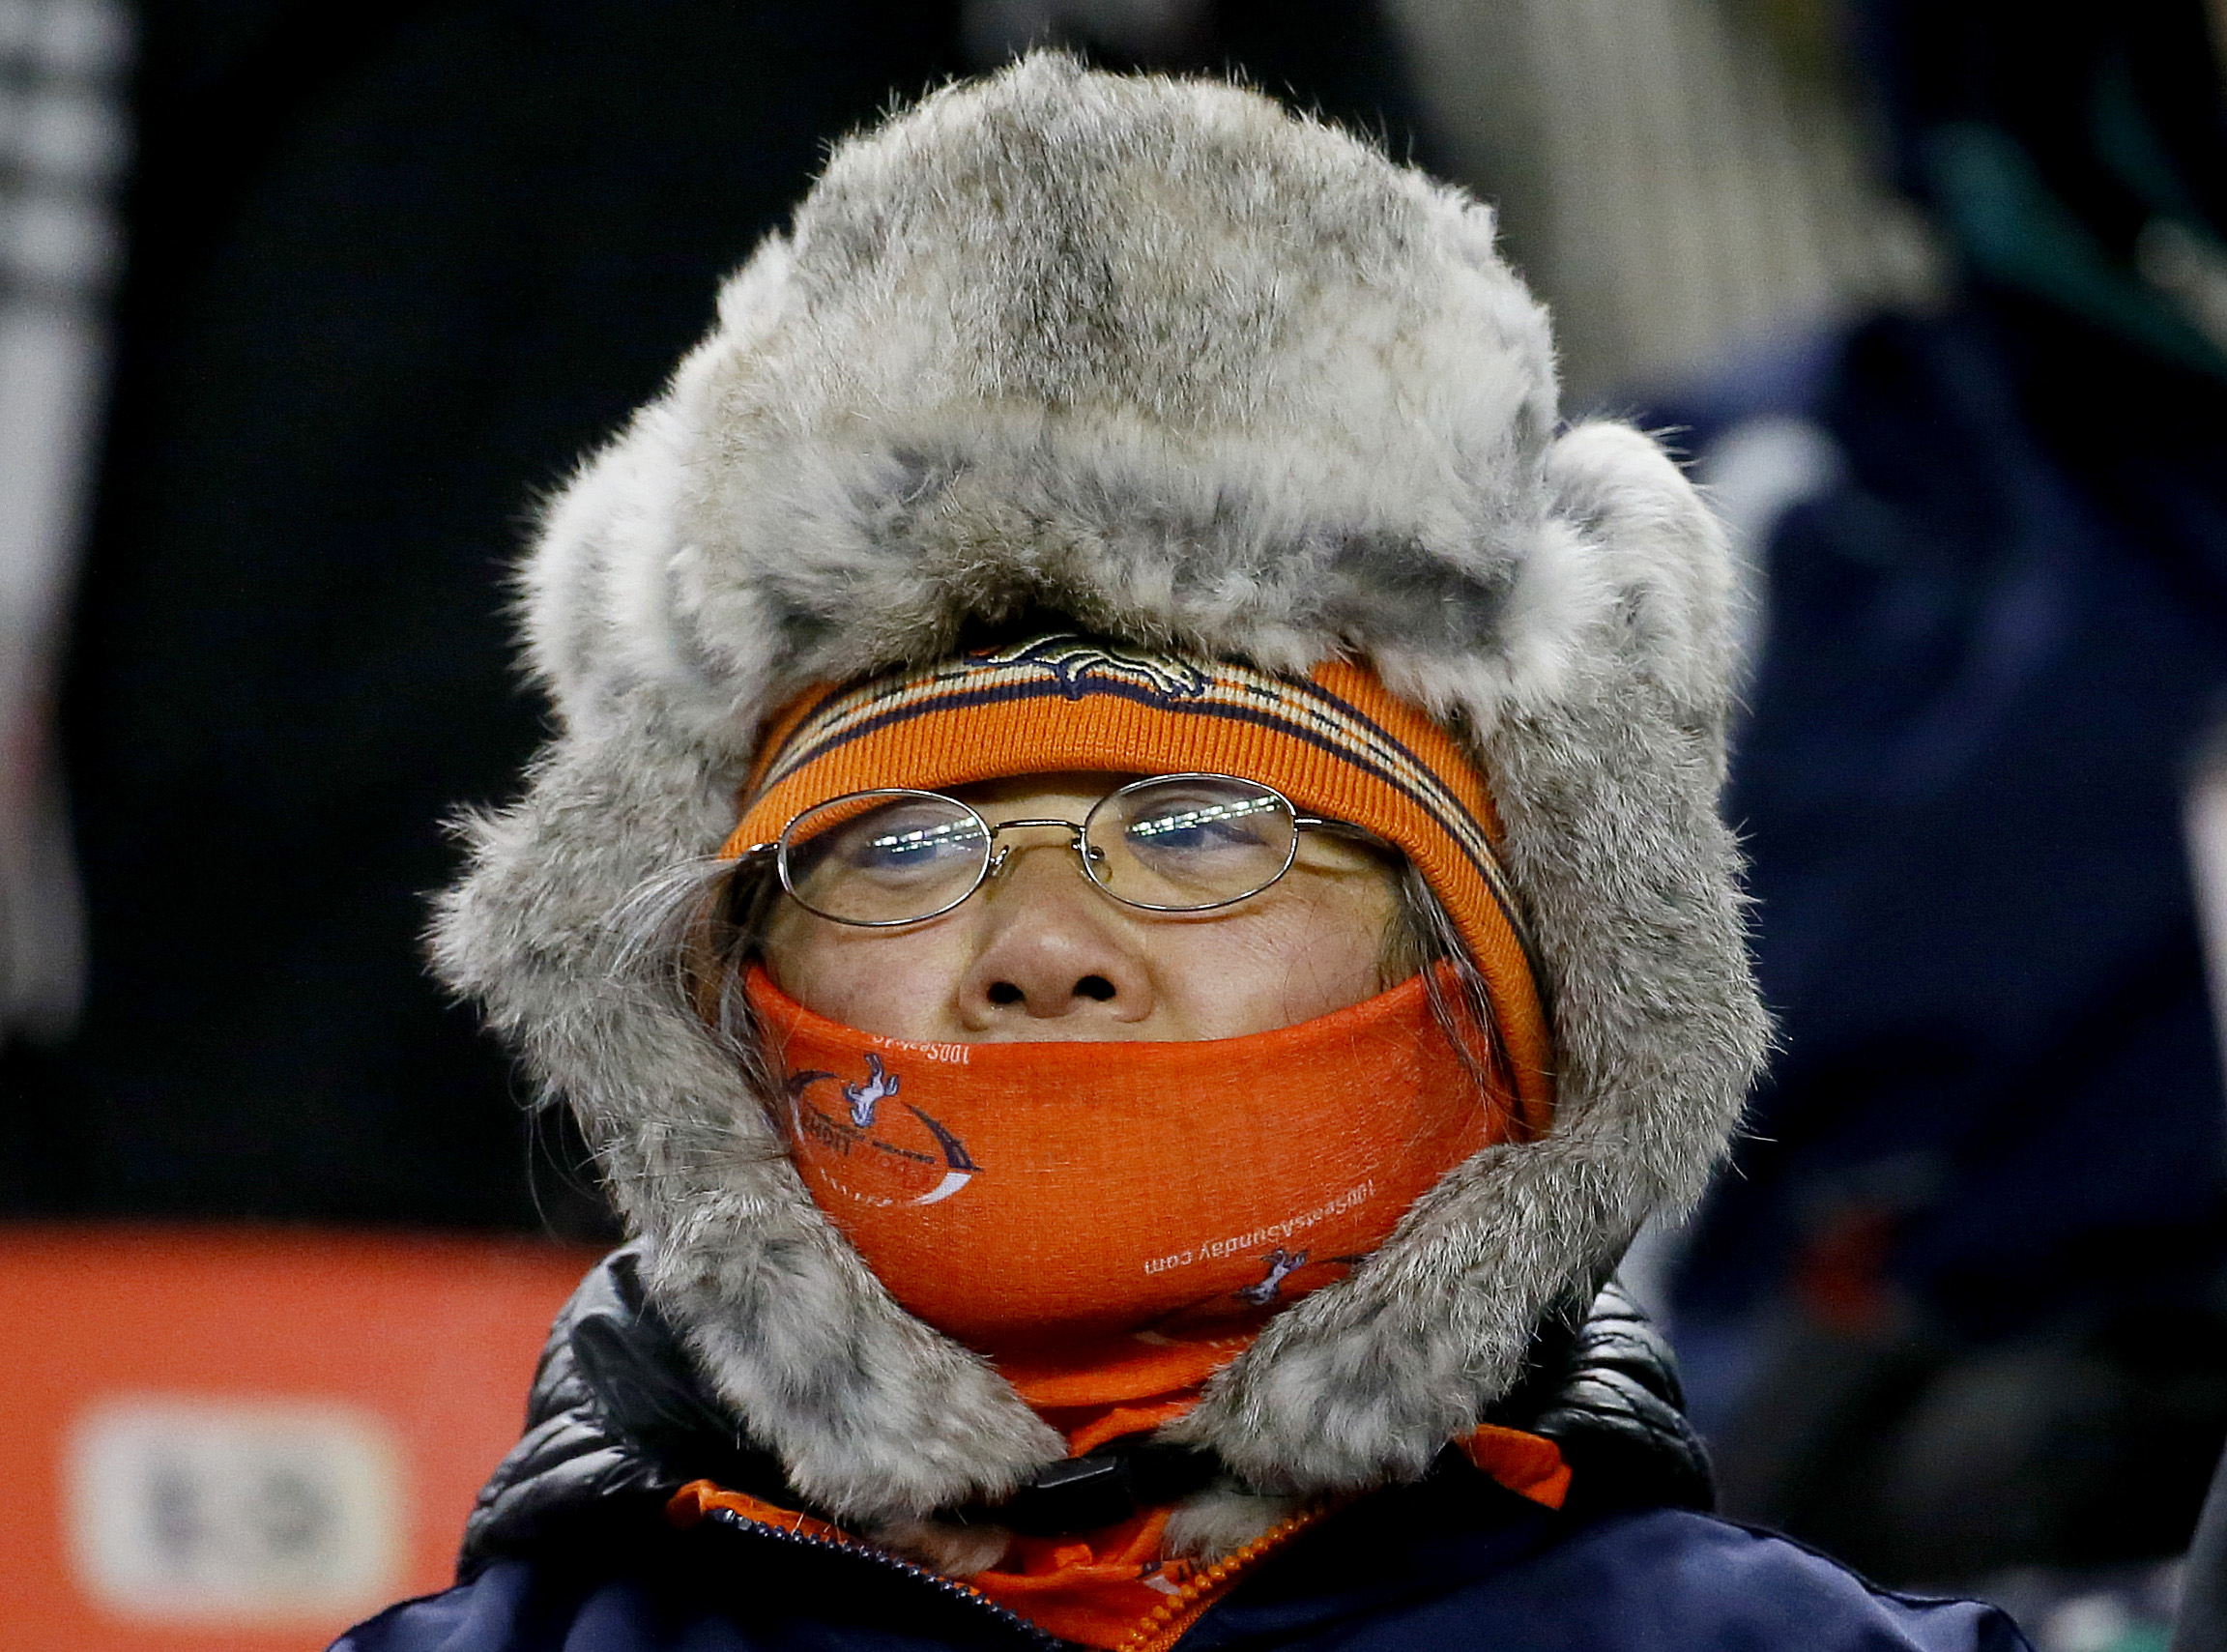 Photo: Broncos Fan Keeps Warm